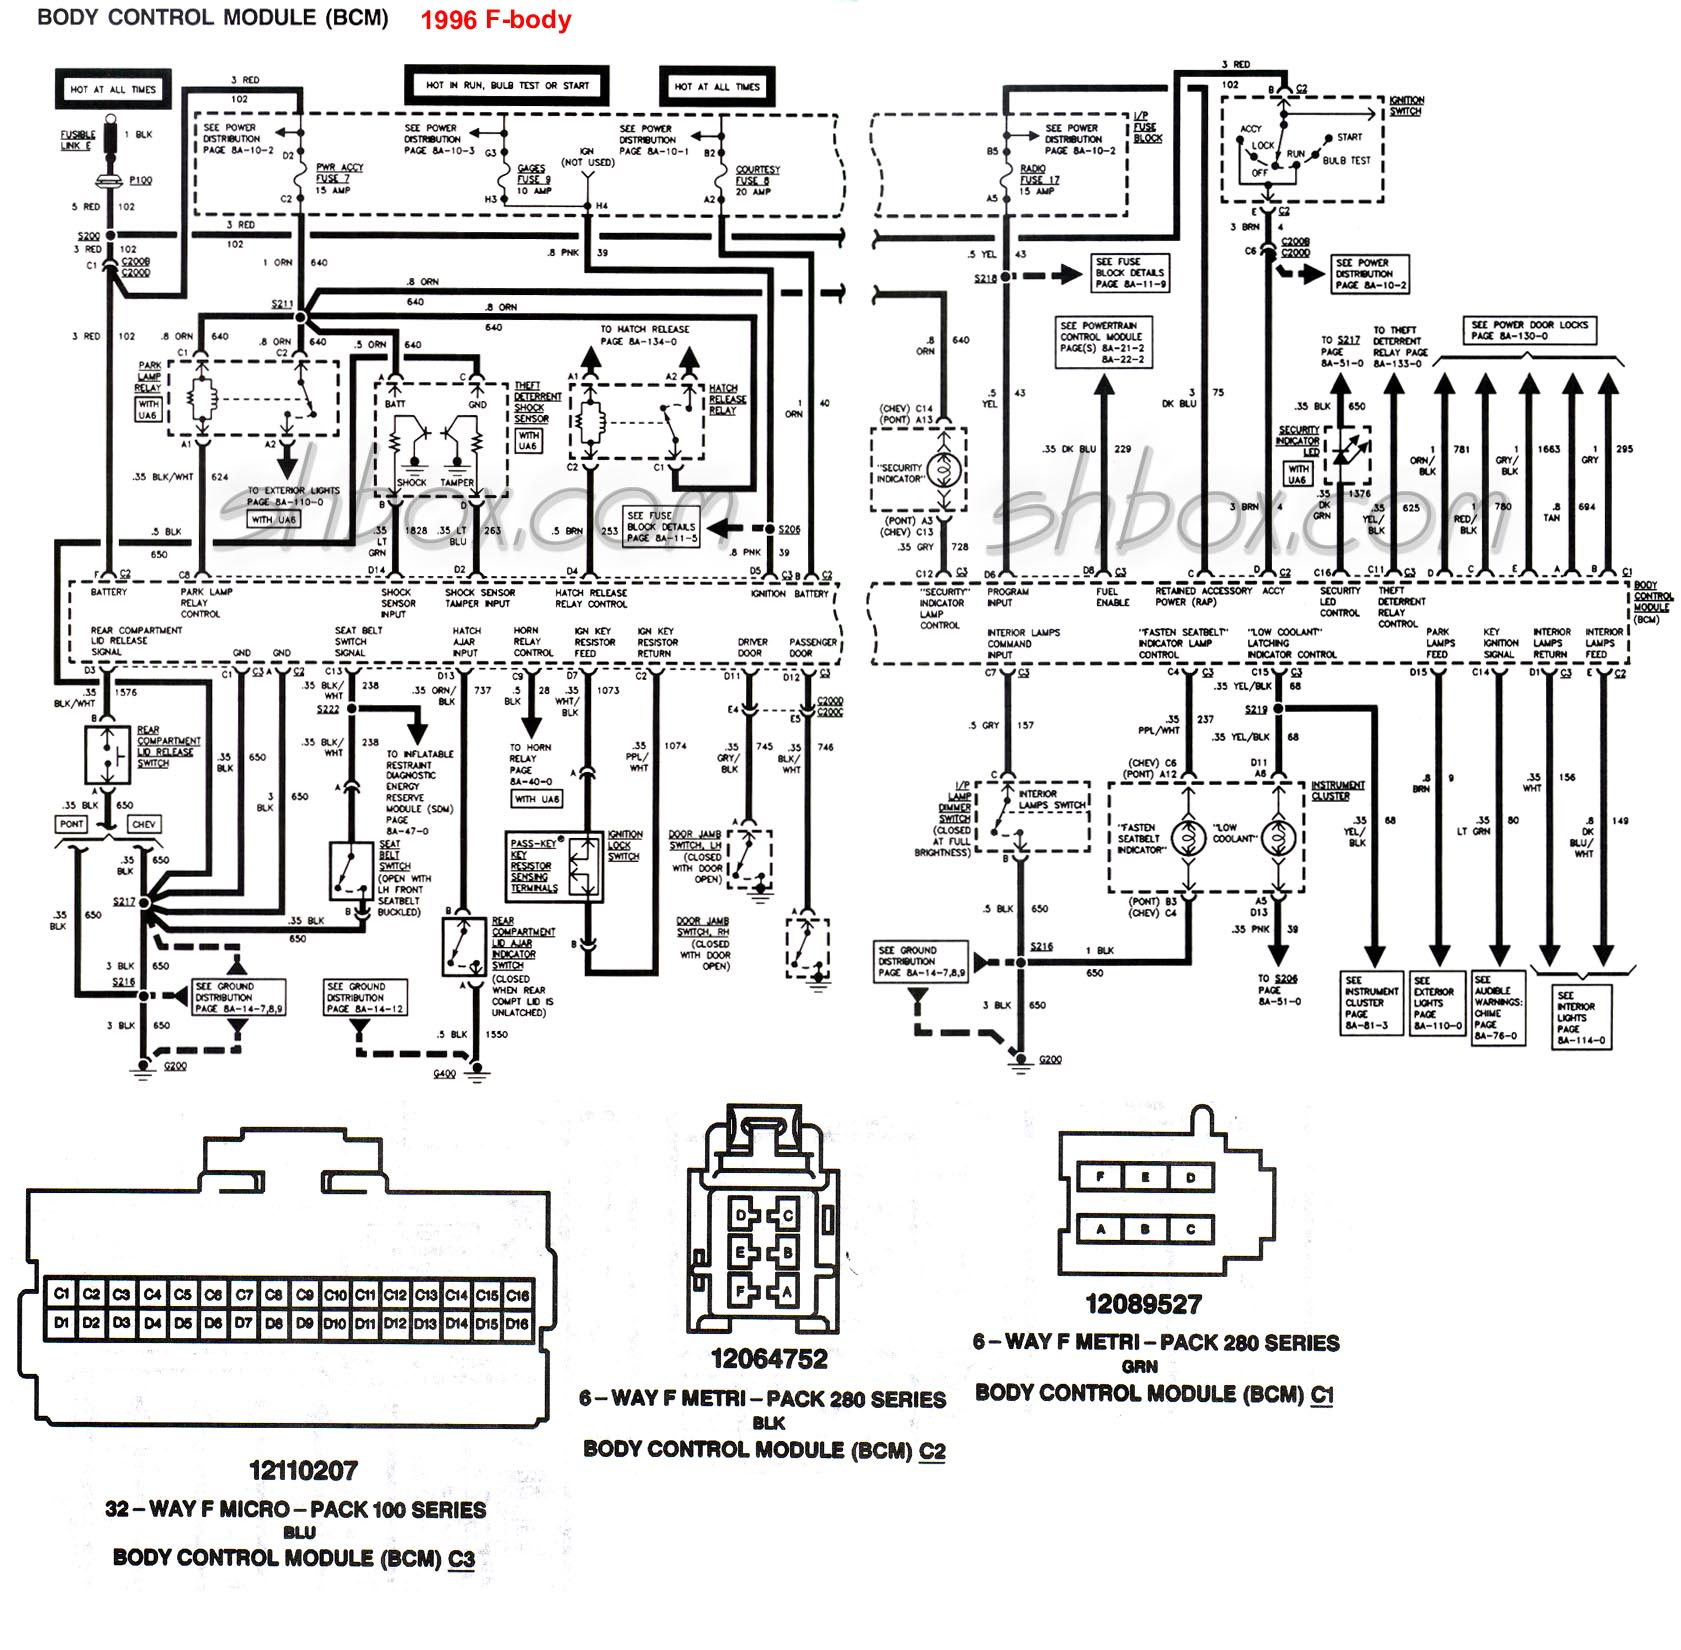 hight resolution of chevy colorado bcm wiring diagram get free image about hyundai santa fe fuse diagram 2007 hyundai